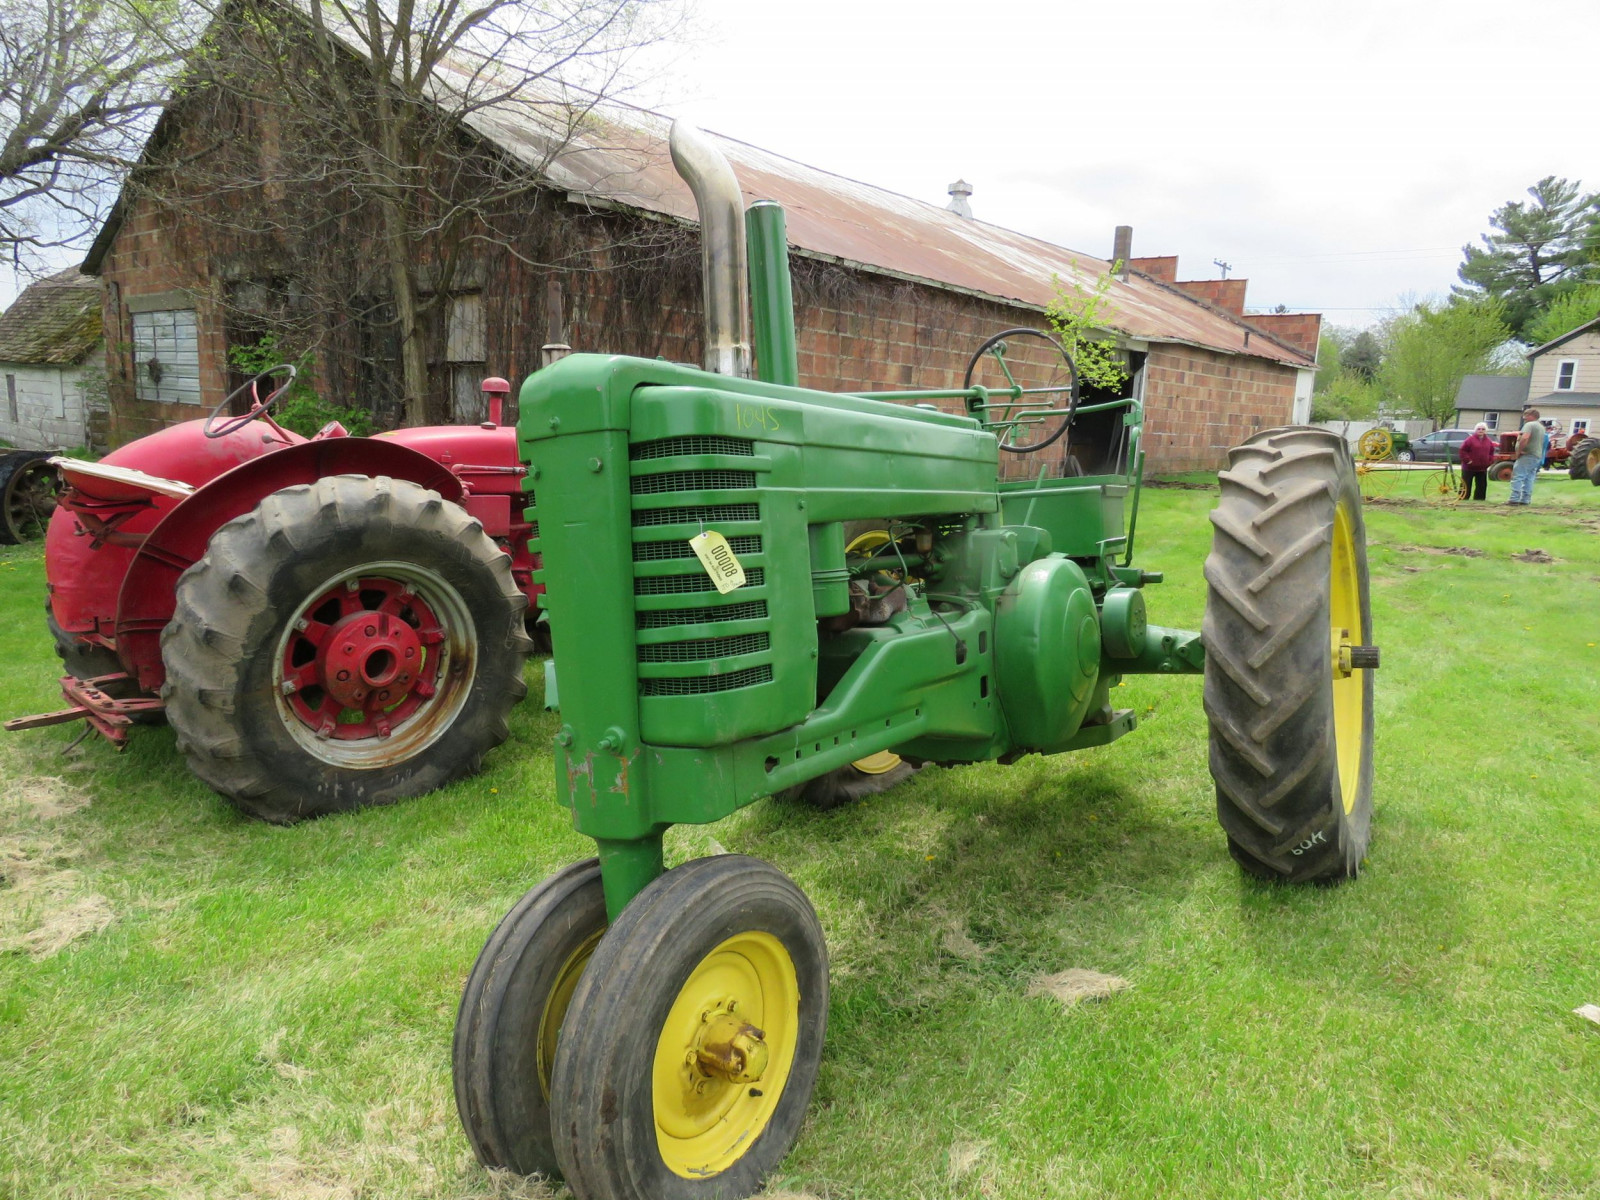 Styled John Deere A Tractor - Image 1